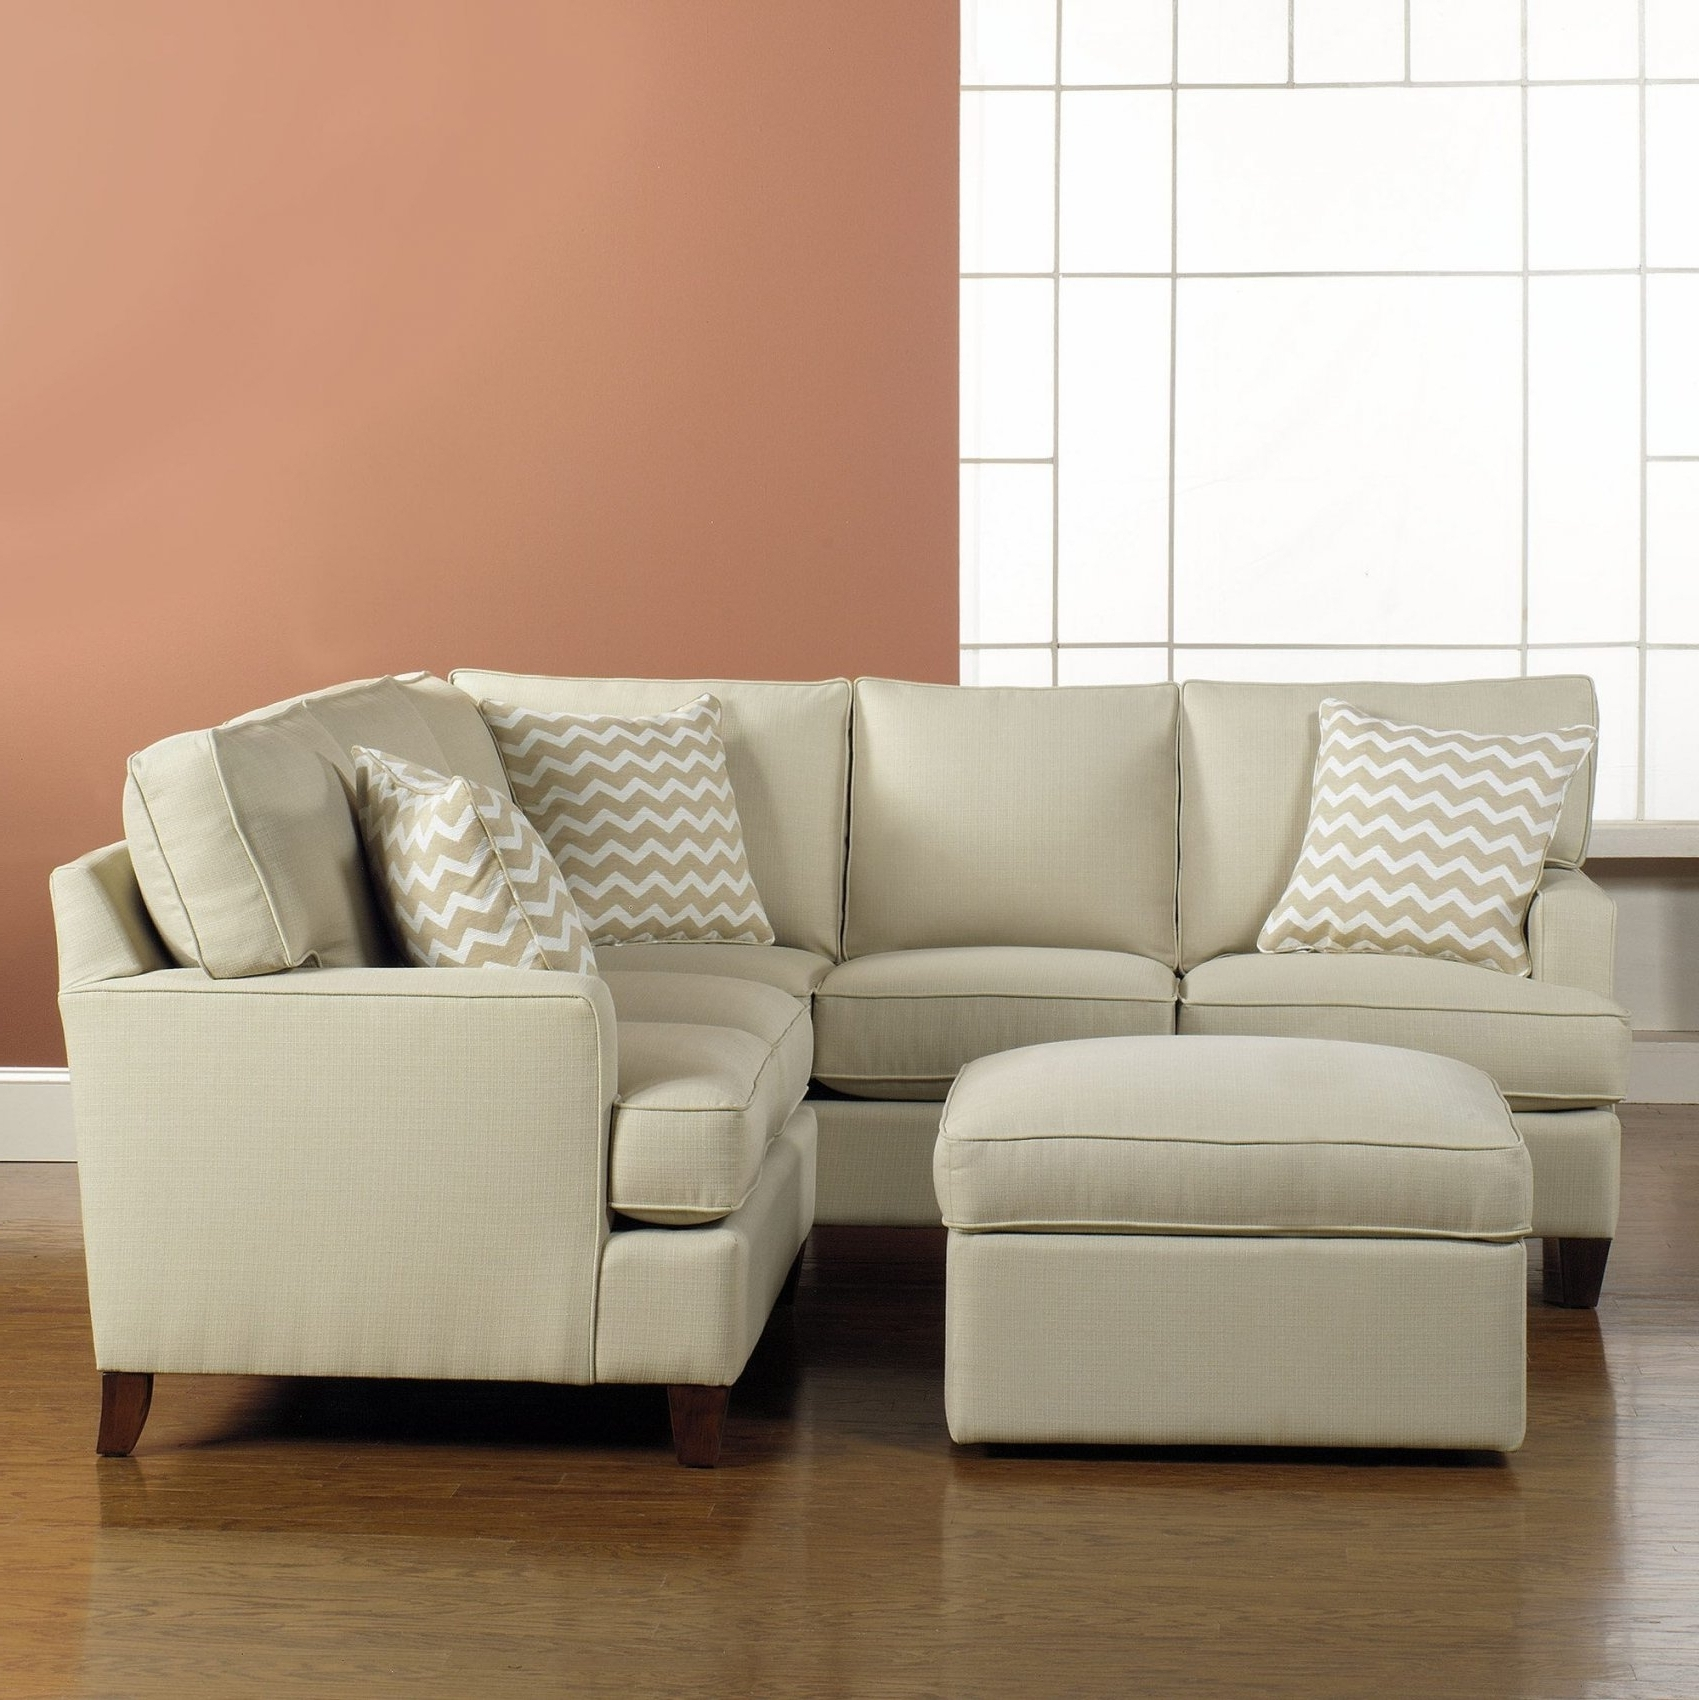 Recent Small Spaces Sectional Sofas With Sectional Sofa For Small Spaces 94 In Living Room Sofa With (View 9 of 20)